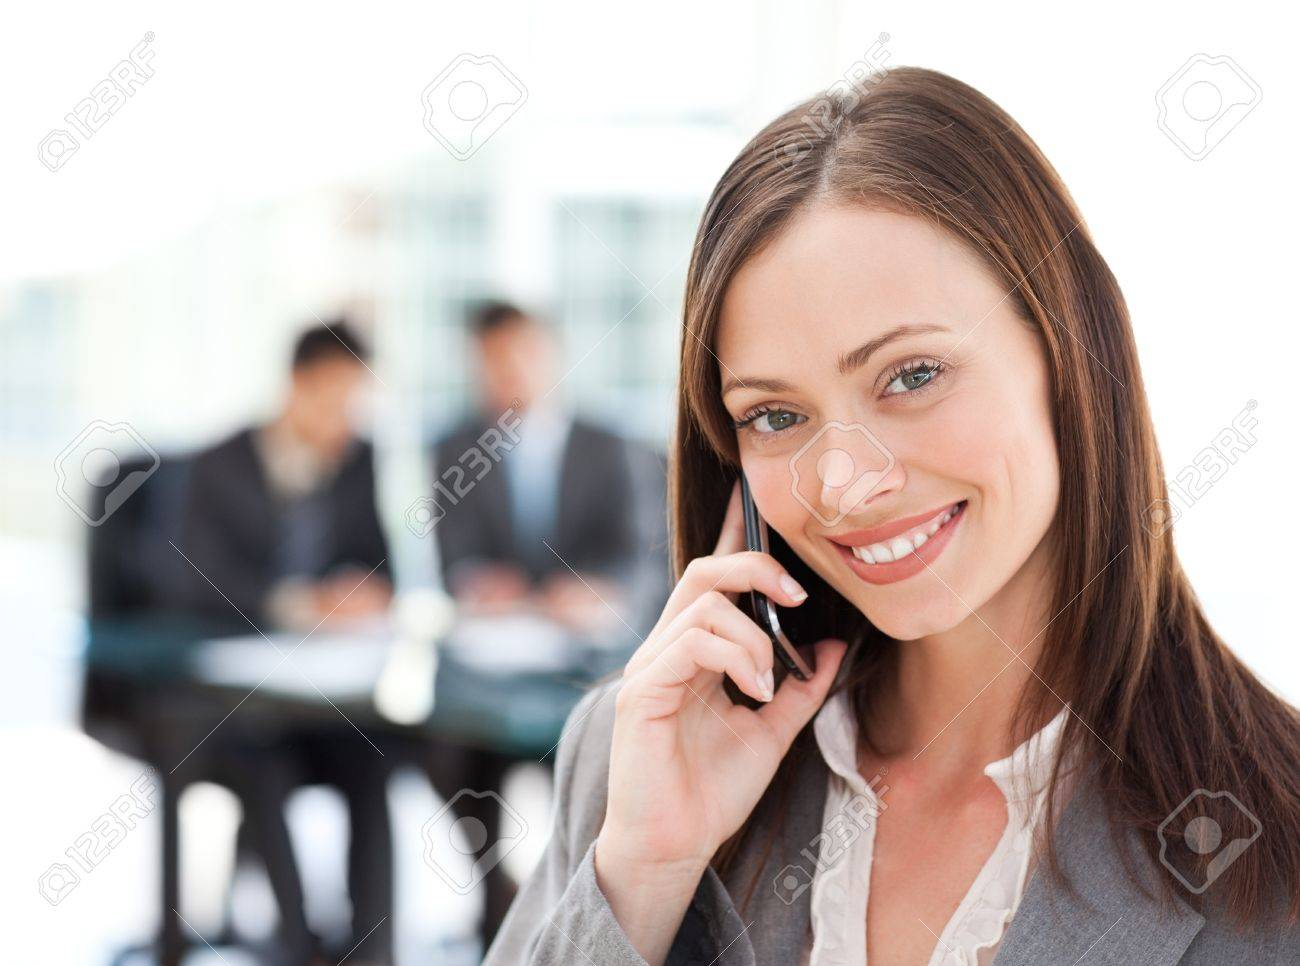 Captivating businesswoman on the phone while her team is working Stock Photo - 10213632